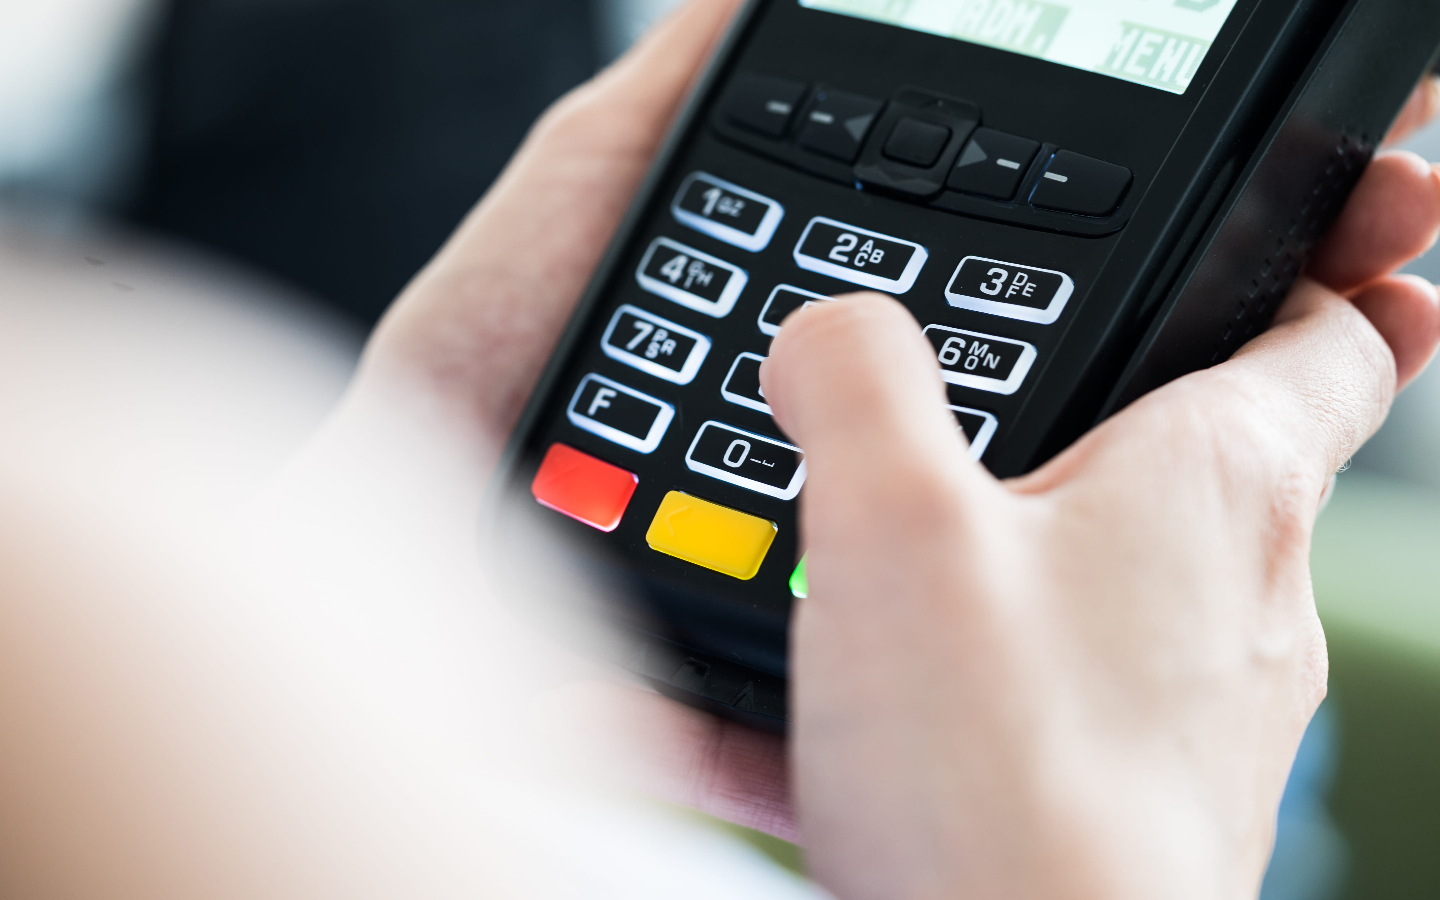 COVID-19: credit card terminals are not that safe